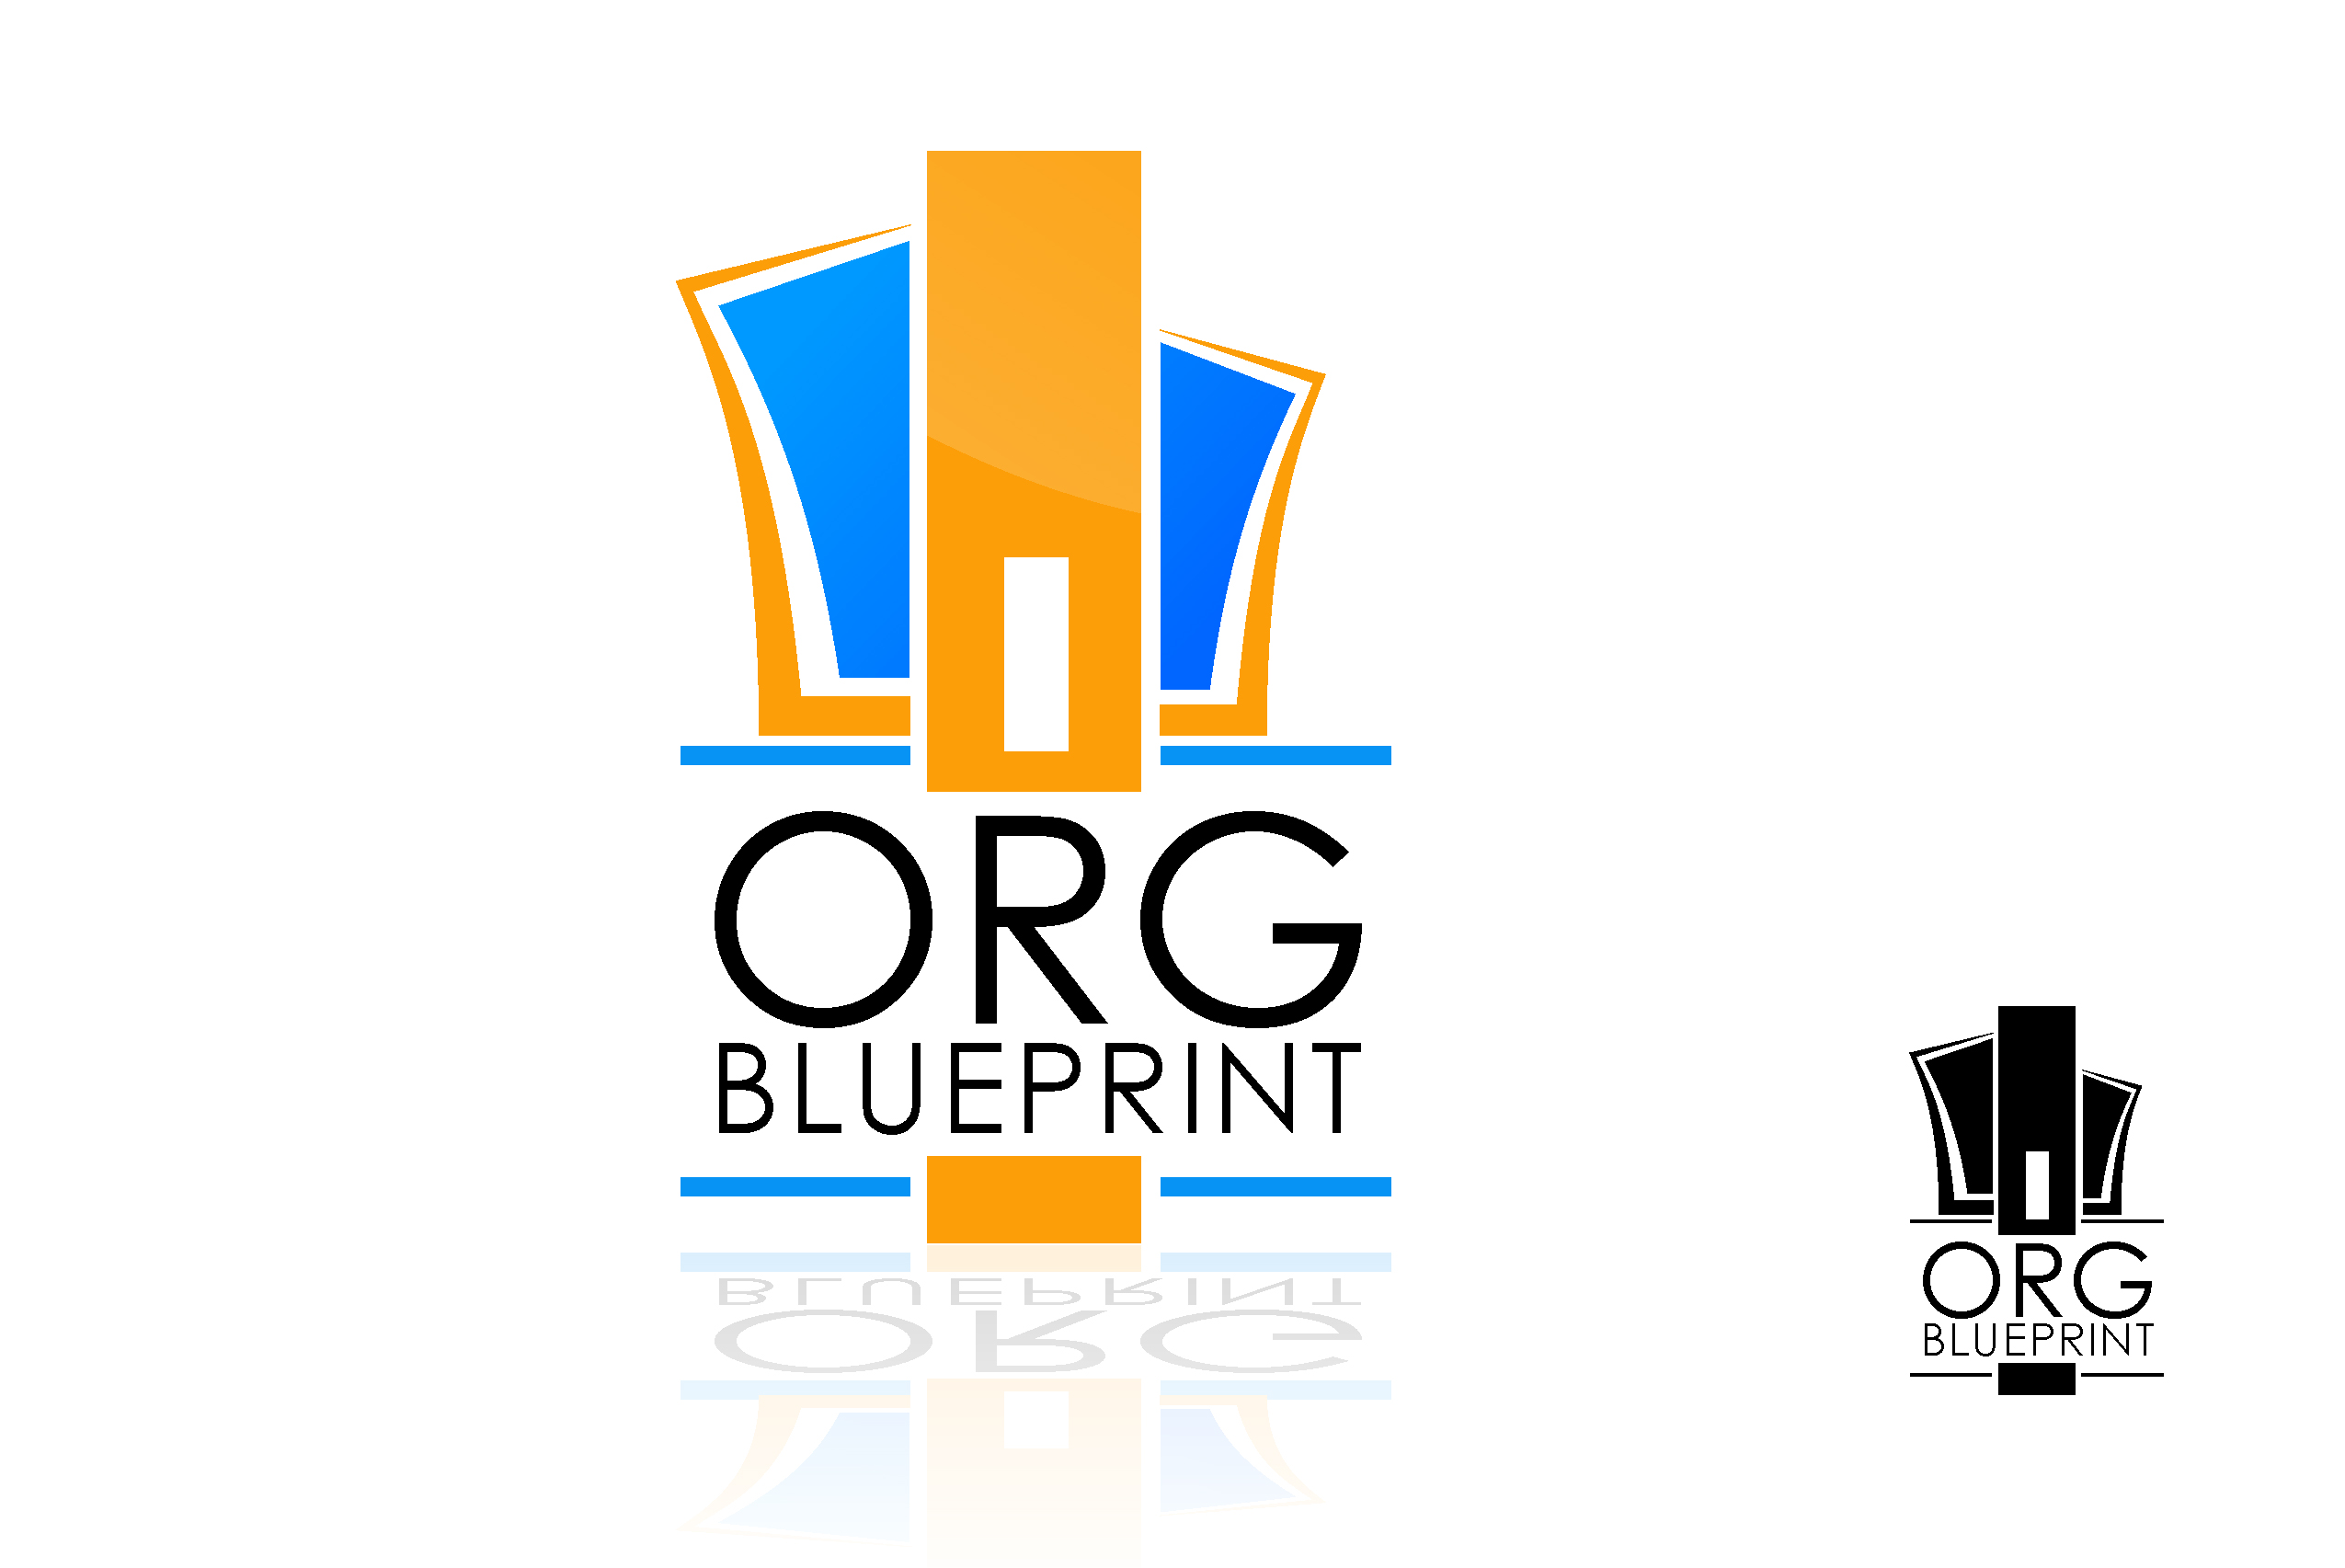 Consulting logo design for org blueprint by perkins design studio consulting logo design for org blueprint in united states design 15844 malvernweather Choice Image